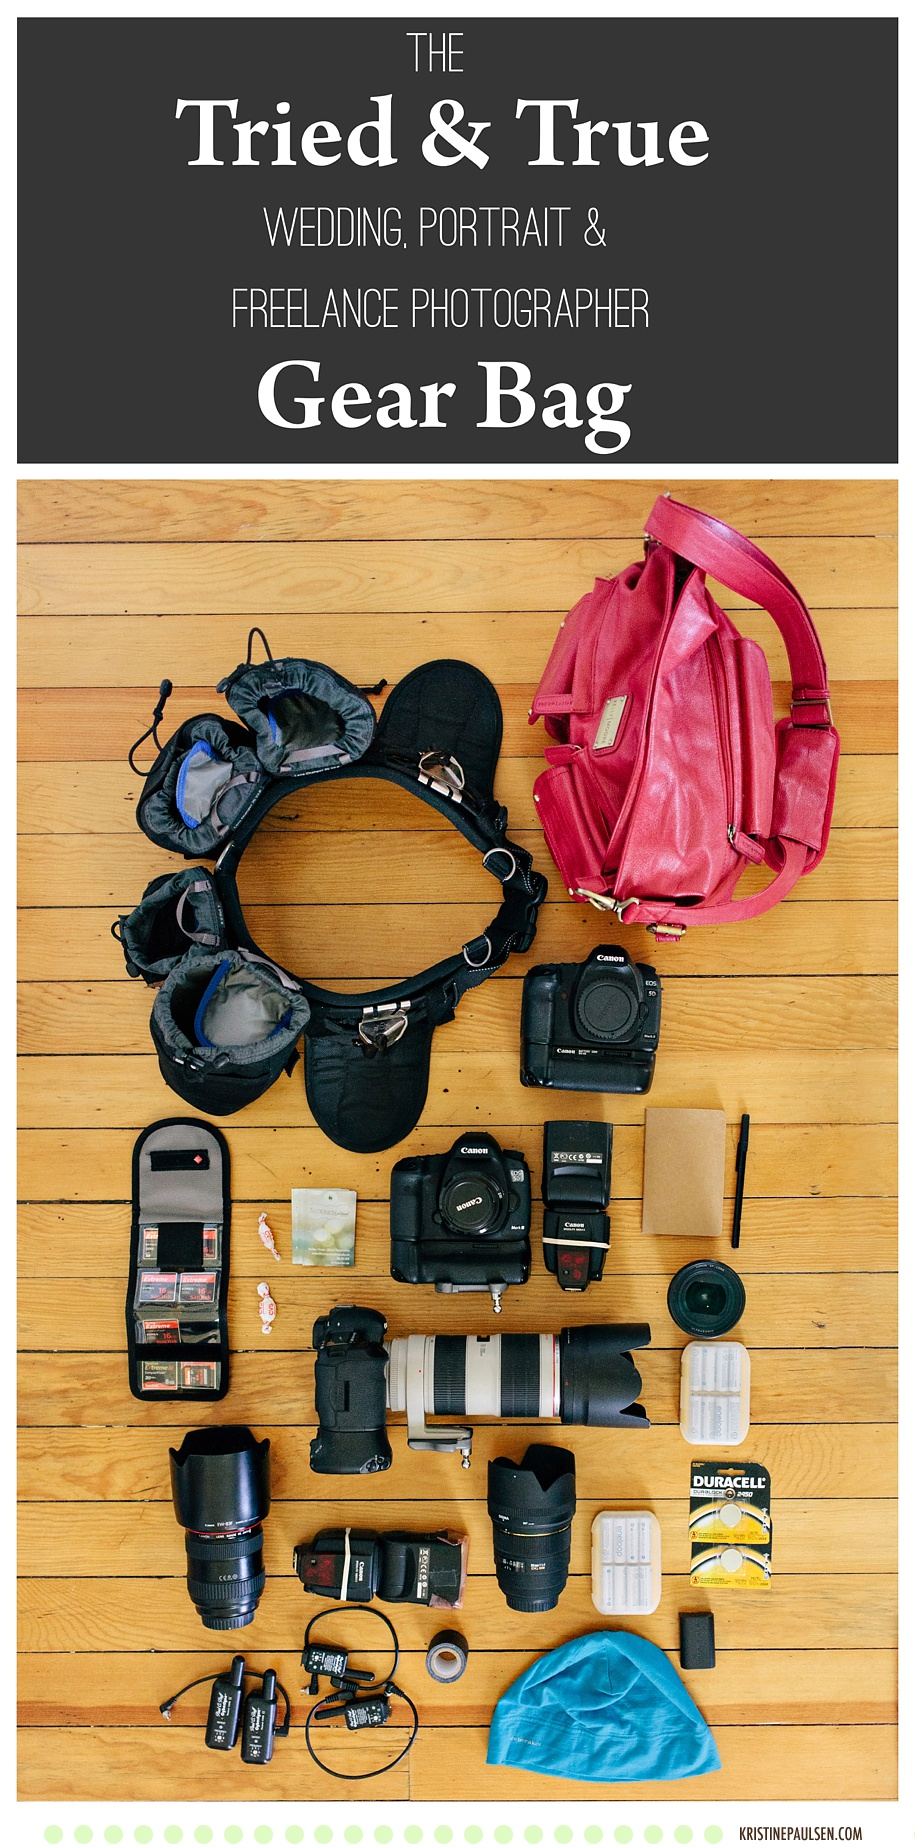 Wedding and Freelance Photographer Photography Gear Bag - Kristine Paulsen Photography